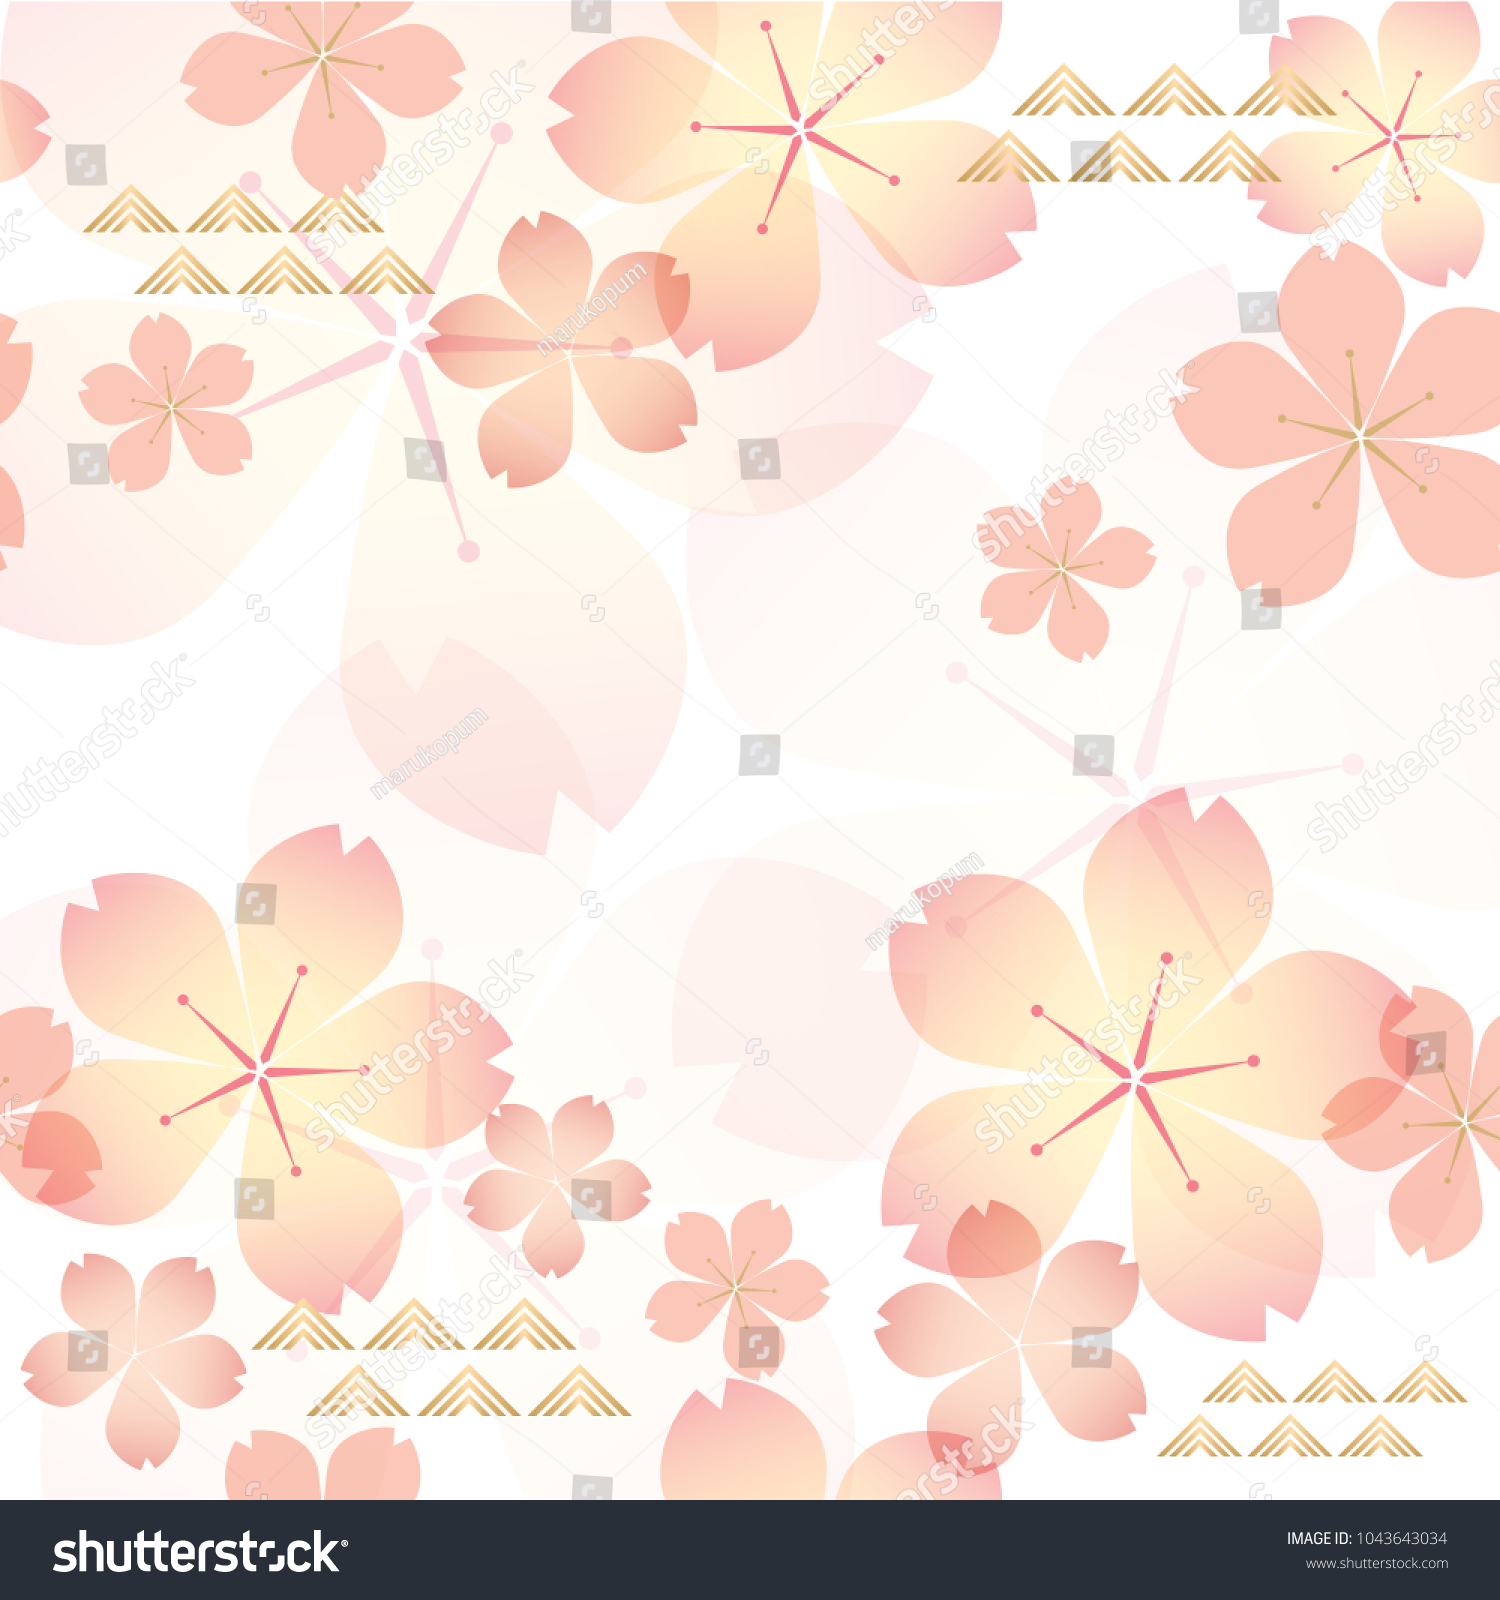 Cherry Blossom Pattern Vector Pink Floral Royalty Free Stock Image